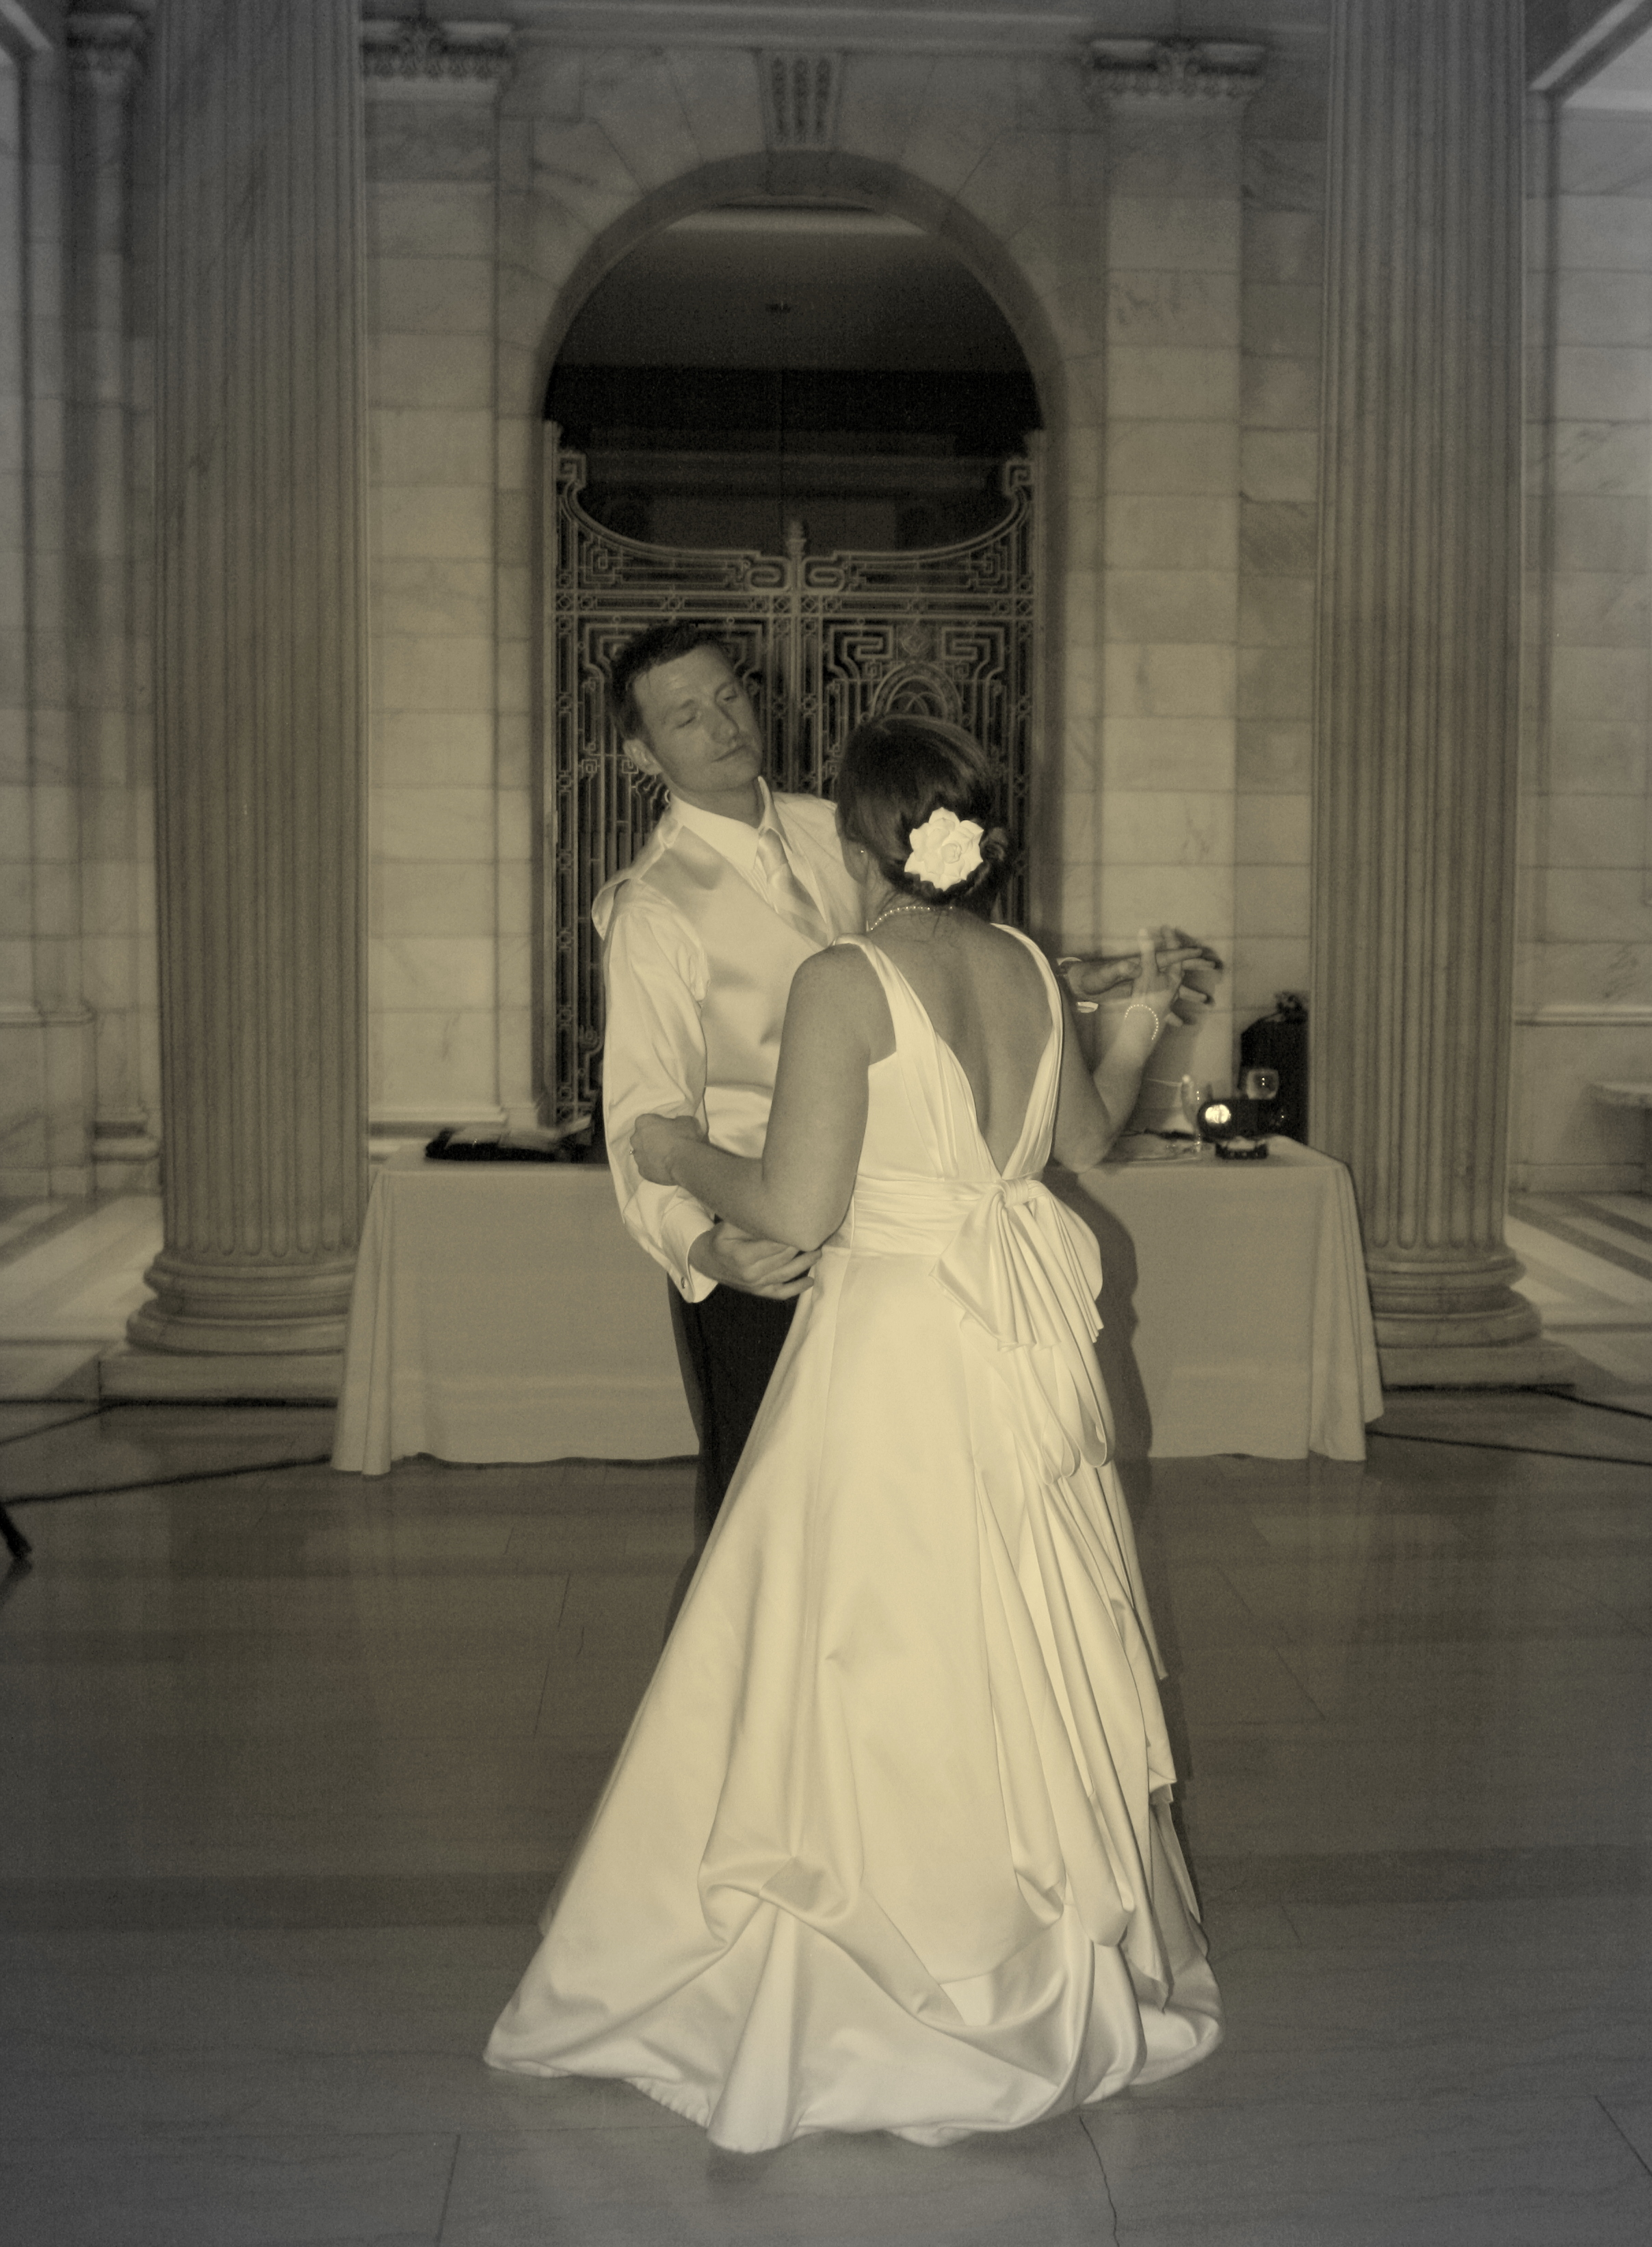 white, black, Bride, Groom, Dance, Wedding, First, And, Romance, Sepia, K mycia photography